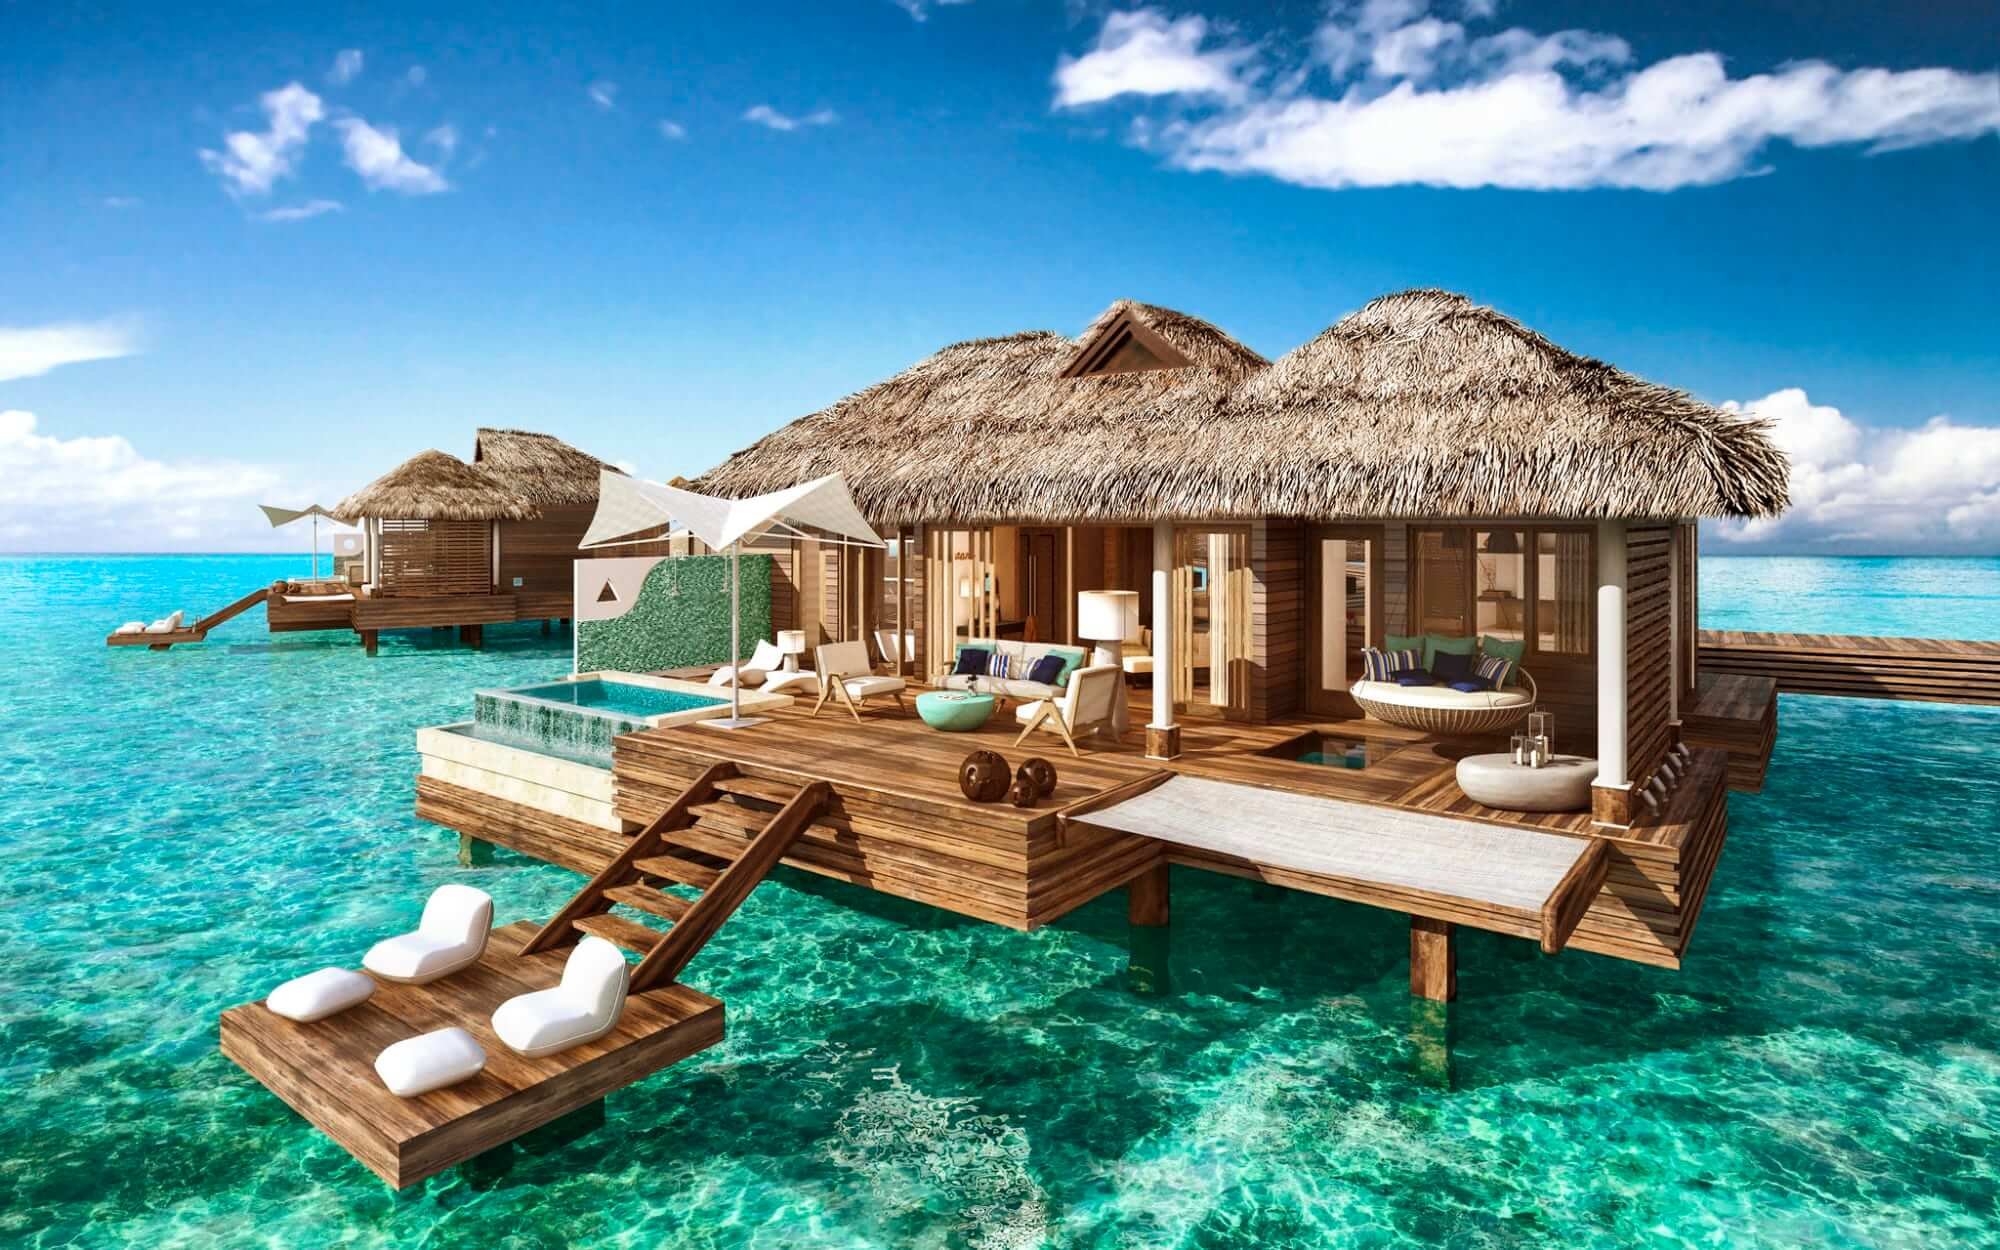 Sandals Royal Caribbean Resort has a problem you want to know about